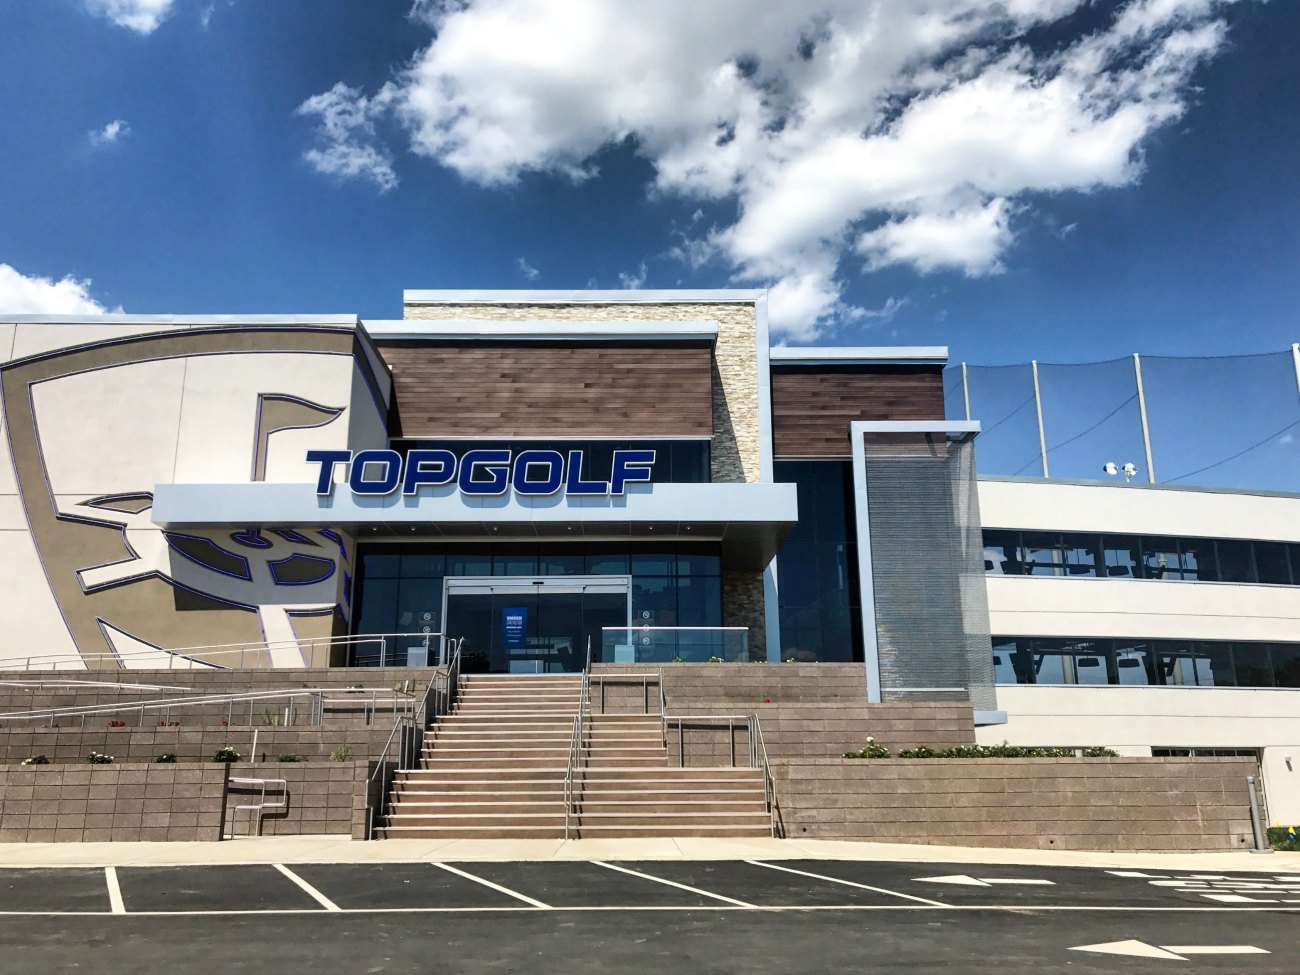 Topgolf opens June 9 in south Charlotte. Here's a sneak peek and what to expect